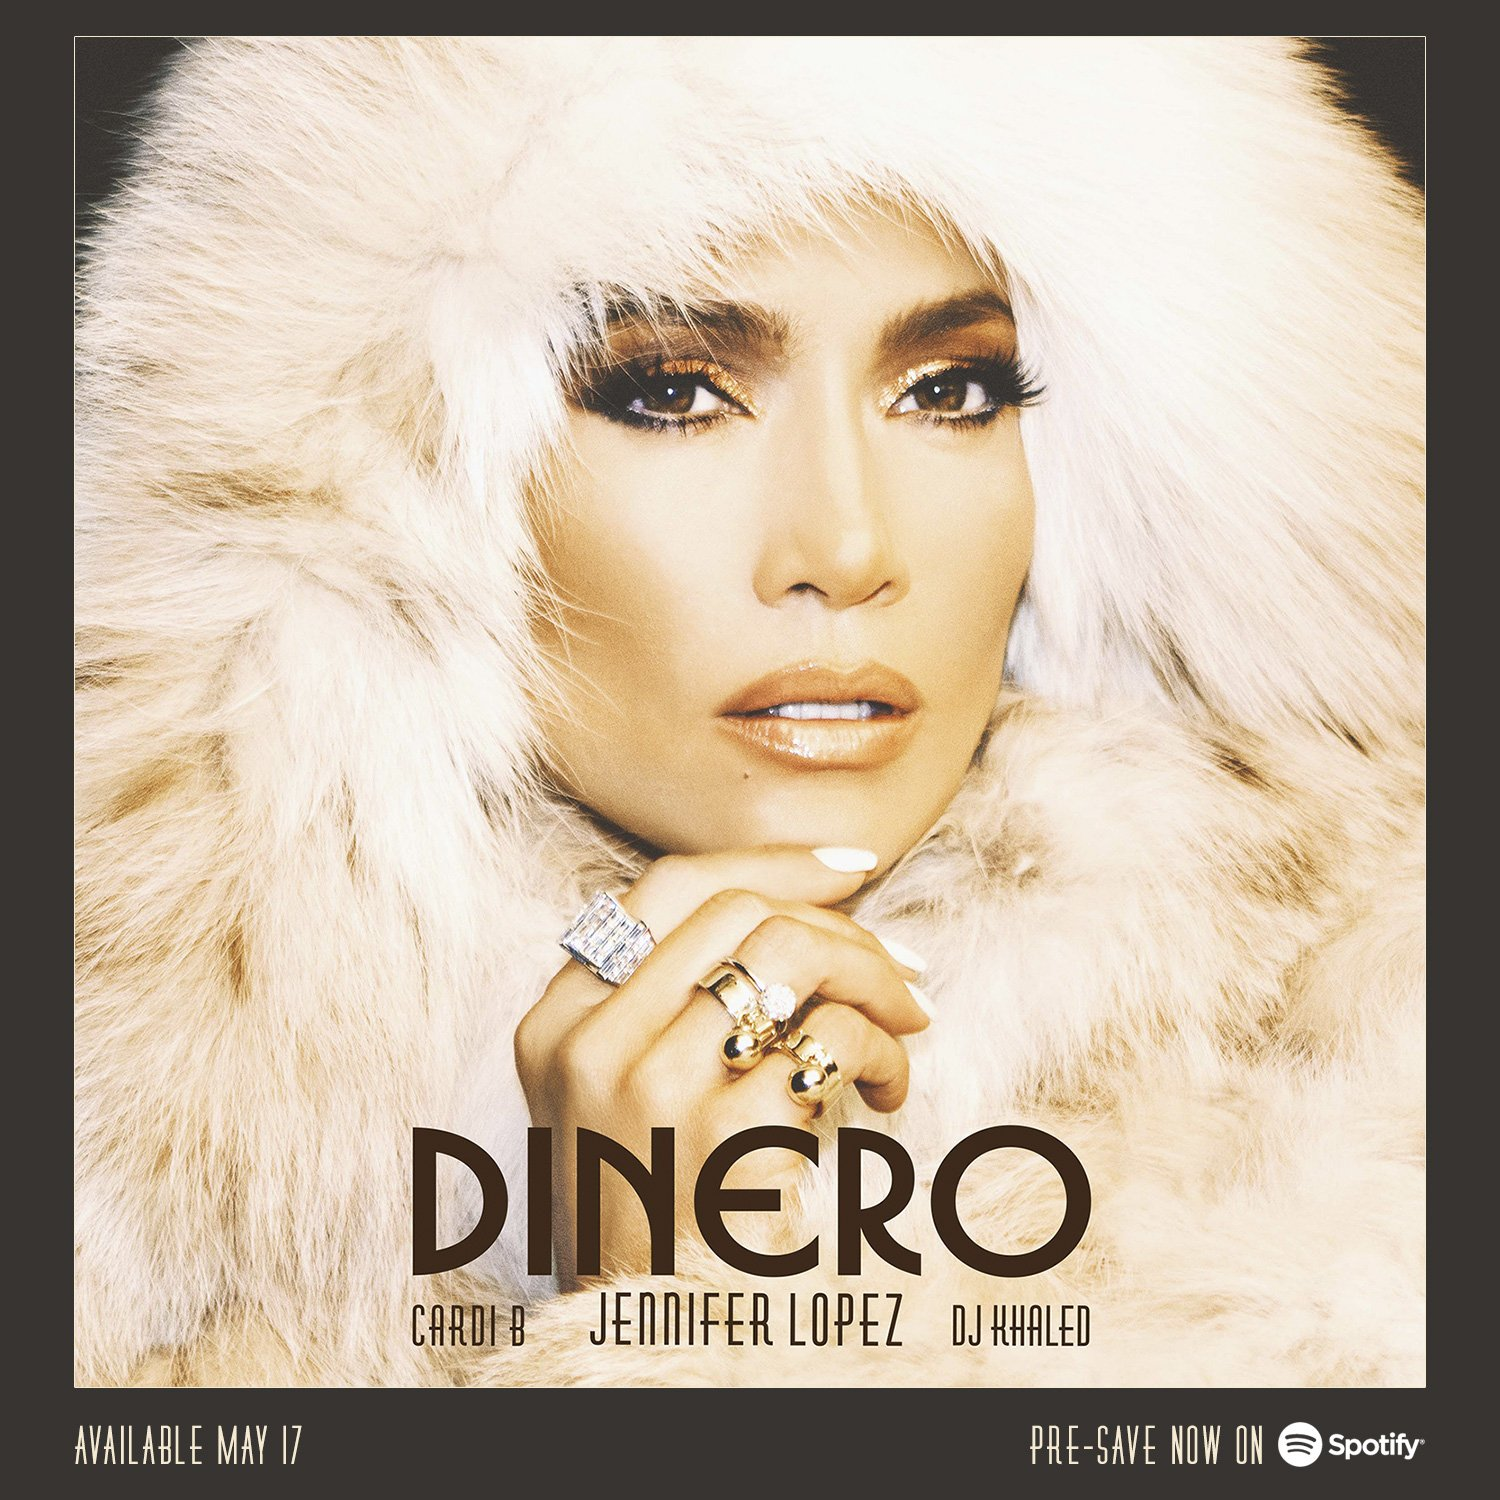 #DINERO ft. #CardiB and @djkhaled pre-save on @Spotify NOW!  https://t.co/sO5LjjH5xq https://t.co/F1sT3bSa5X